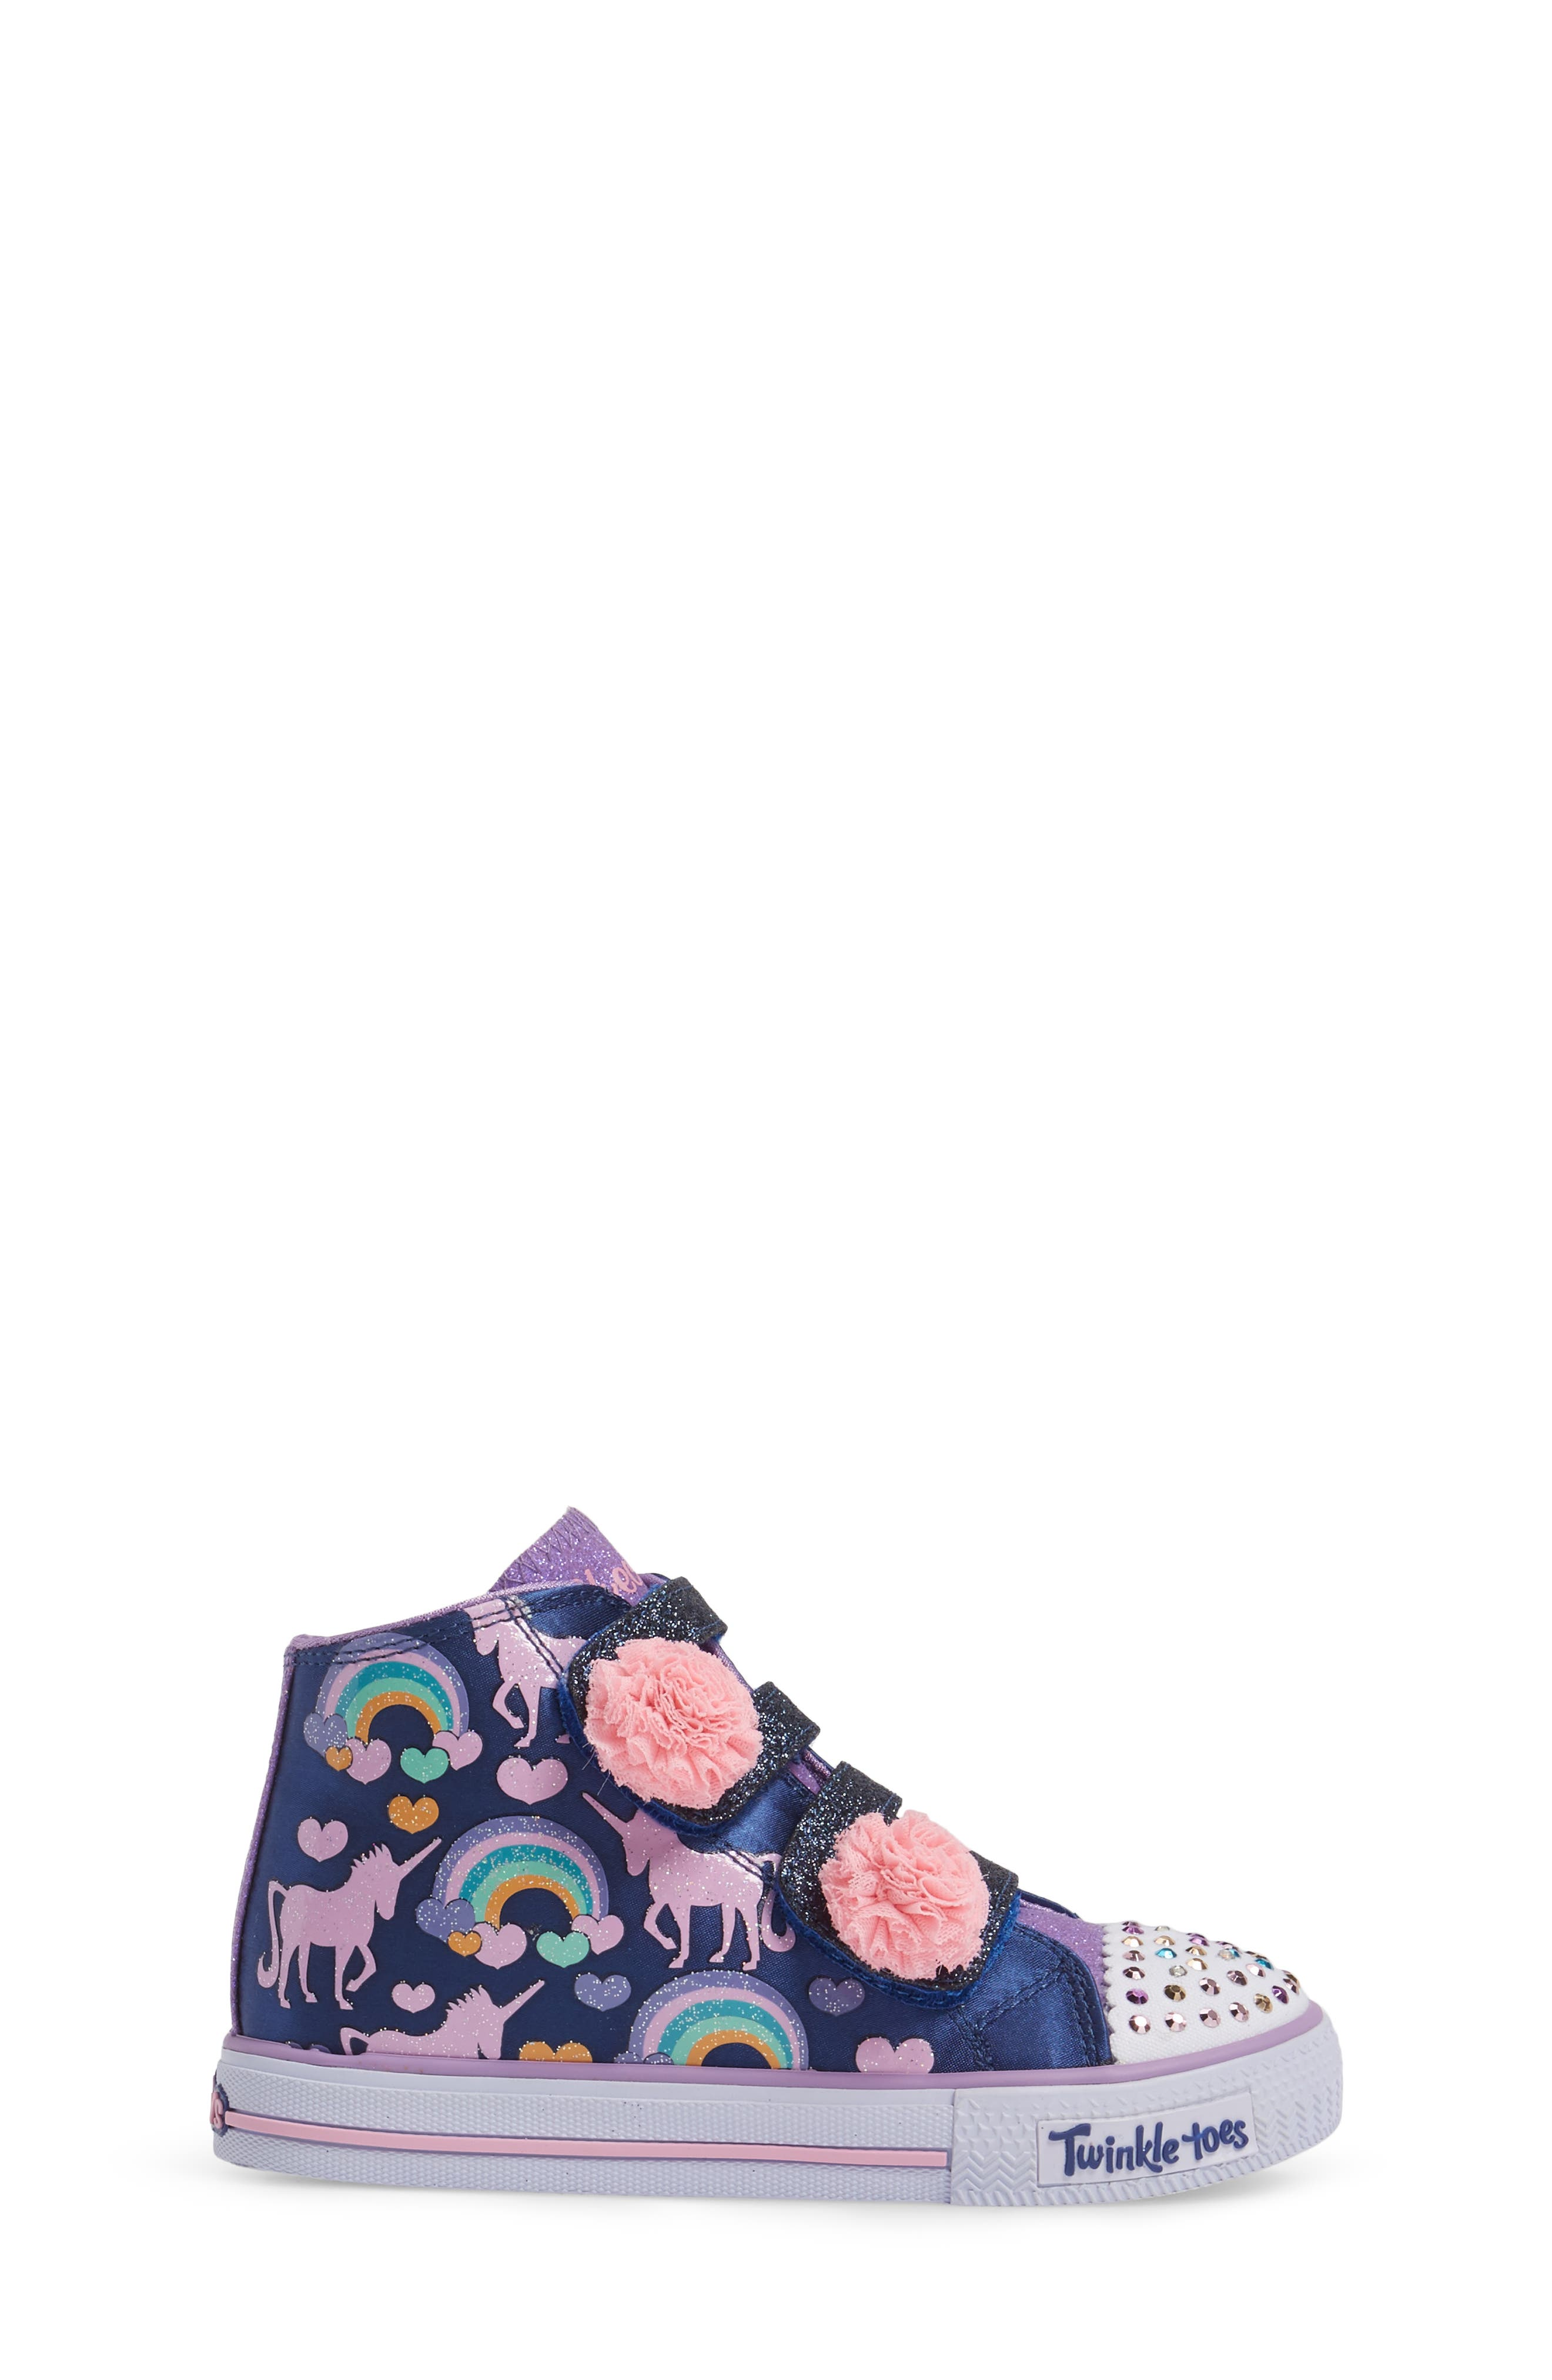 Twinkle Toes Shuffles High Top Sneaker,                             Alternate thumbnail 3, color,                             400